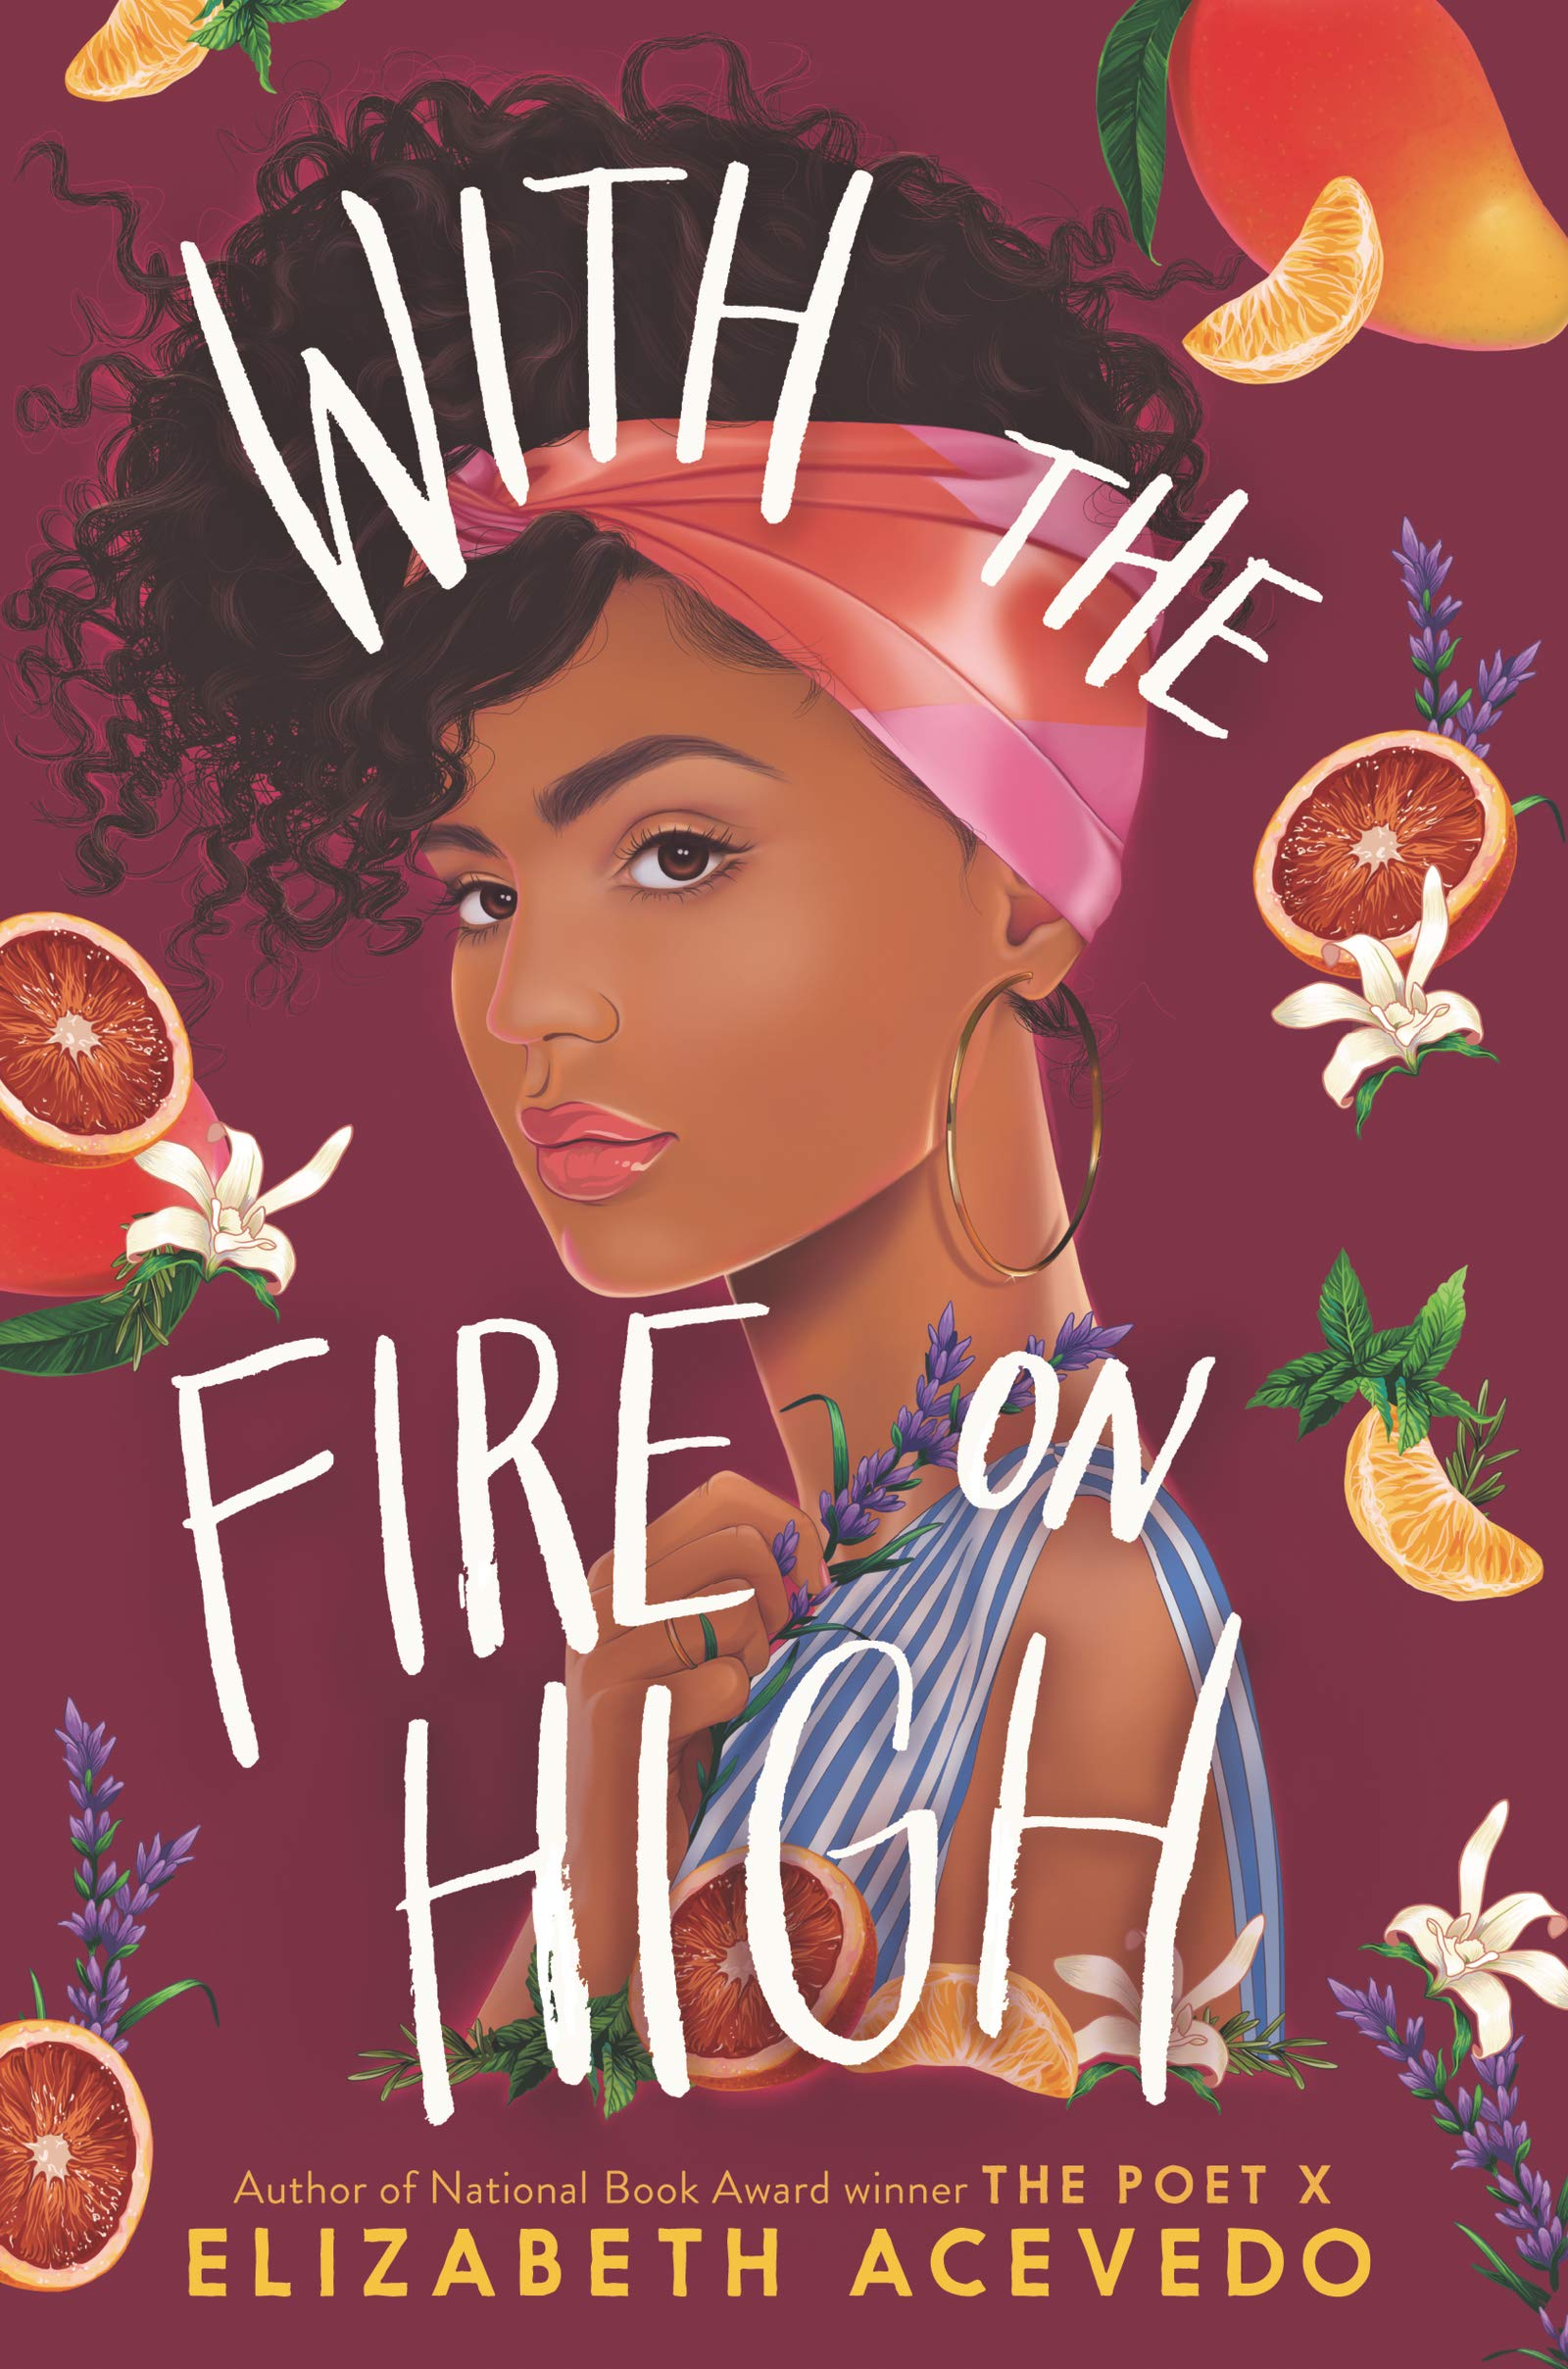 With the Fire on High: Amazon.co.uk: Acevedo, Elizabeth: Books